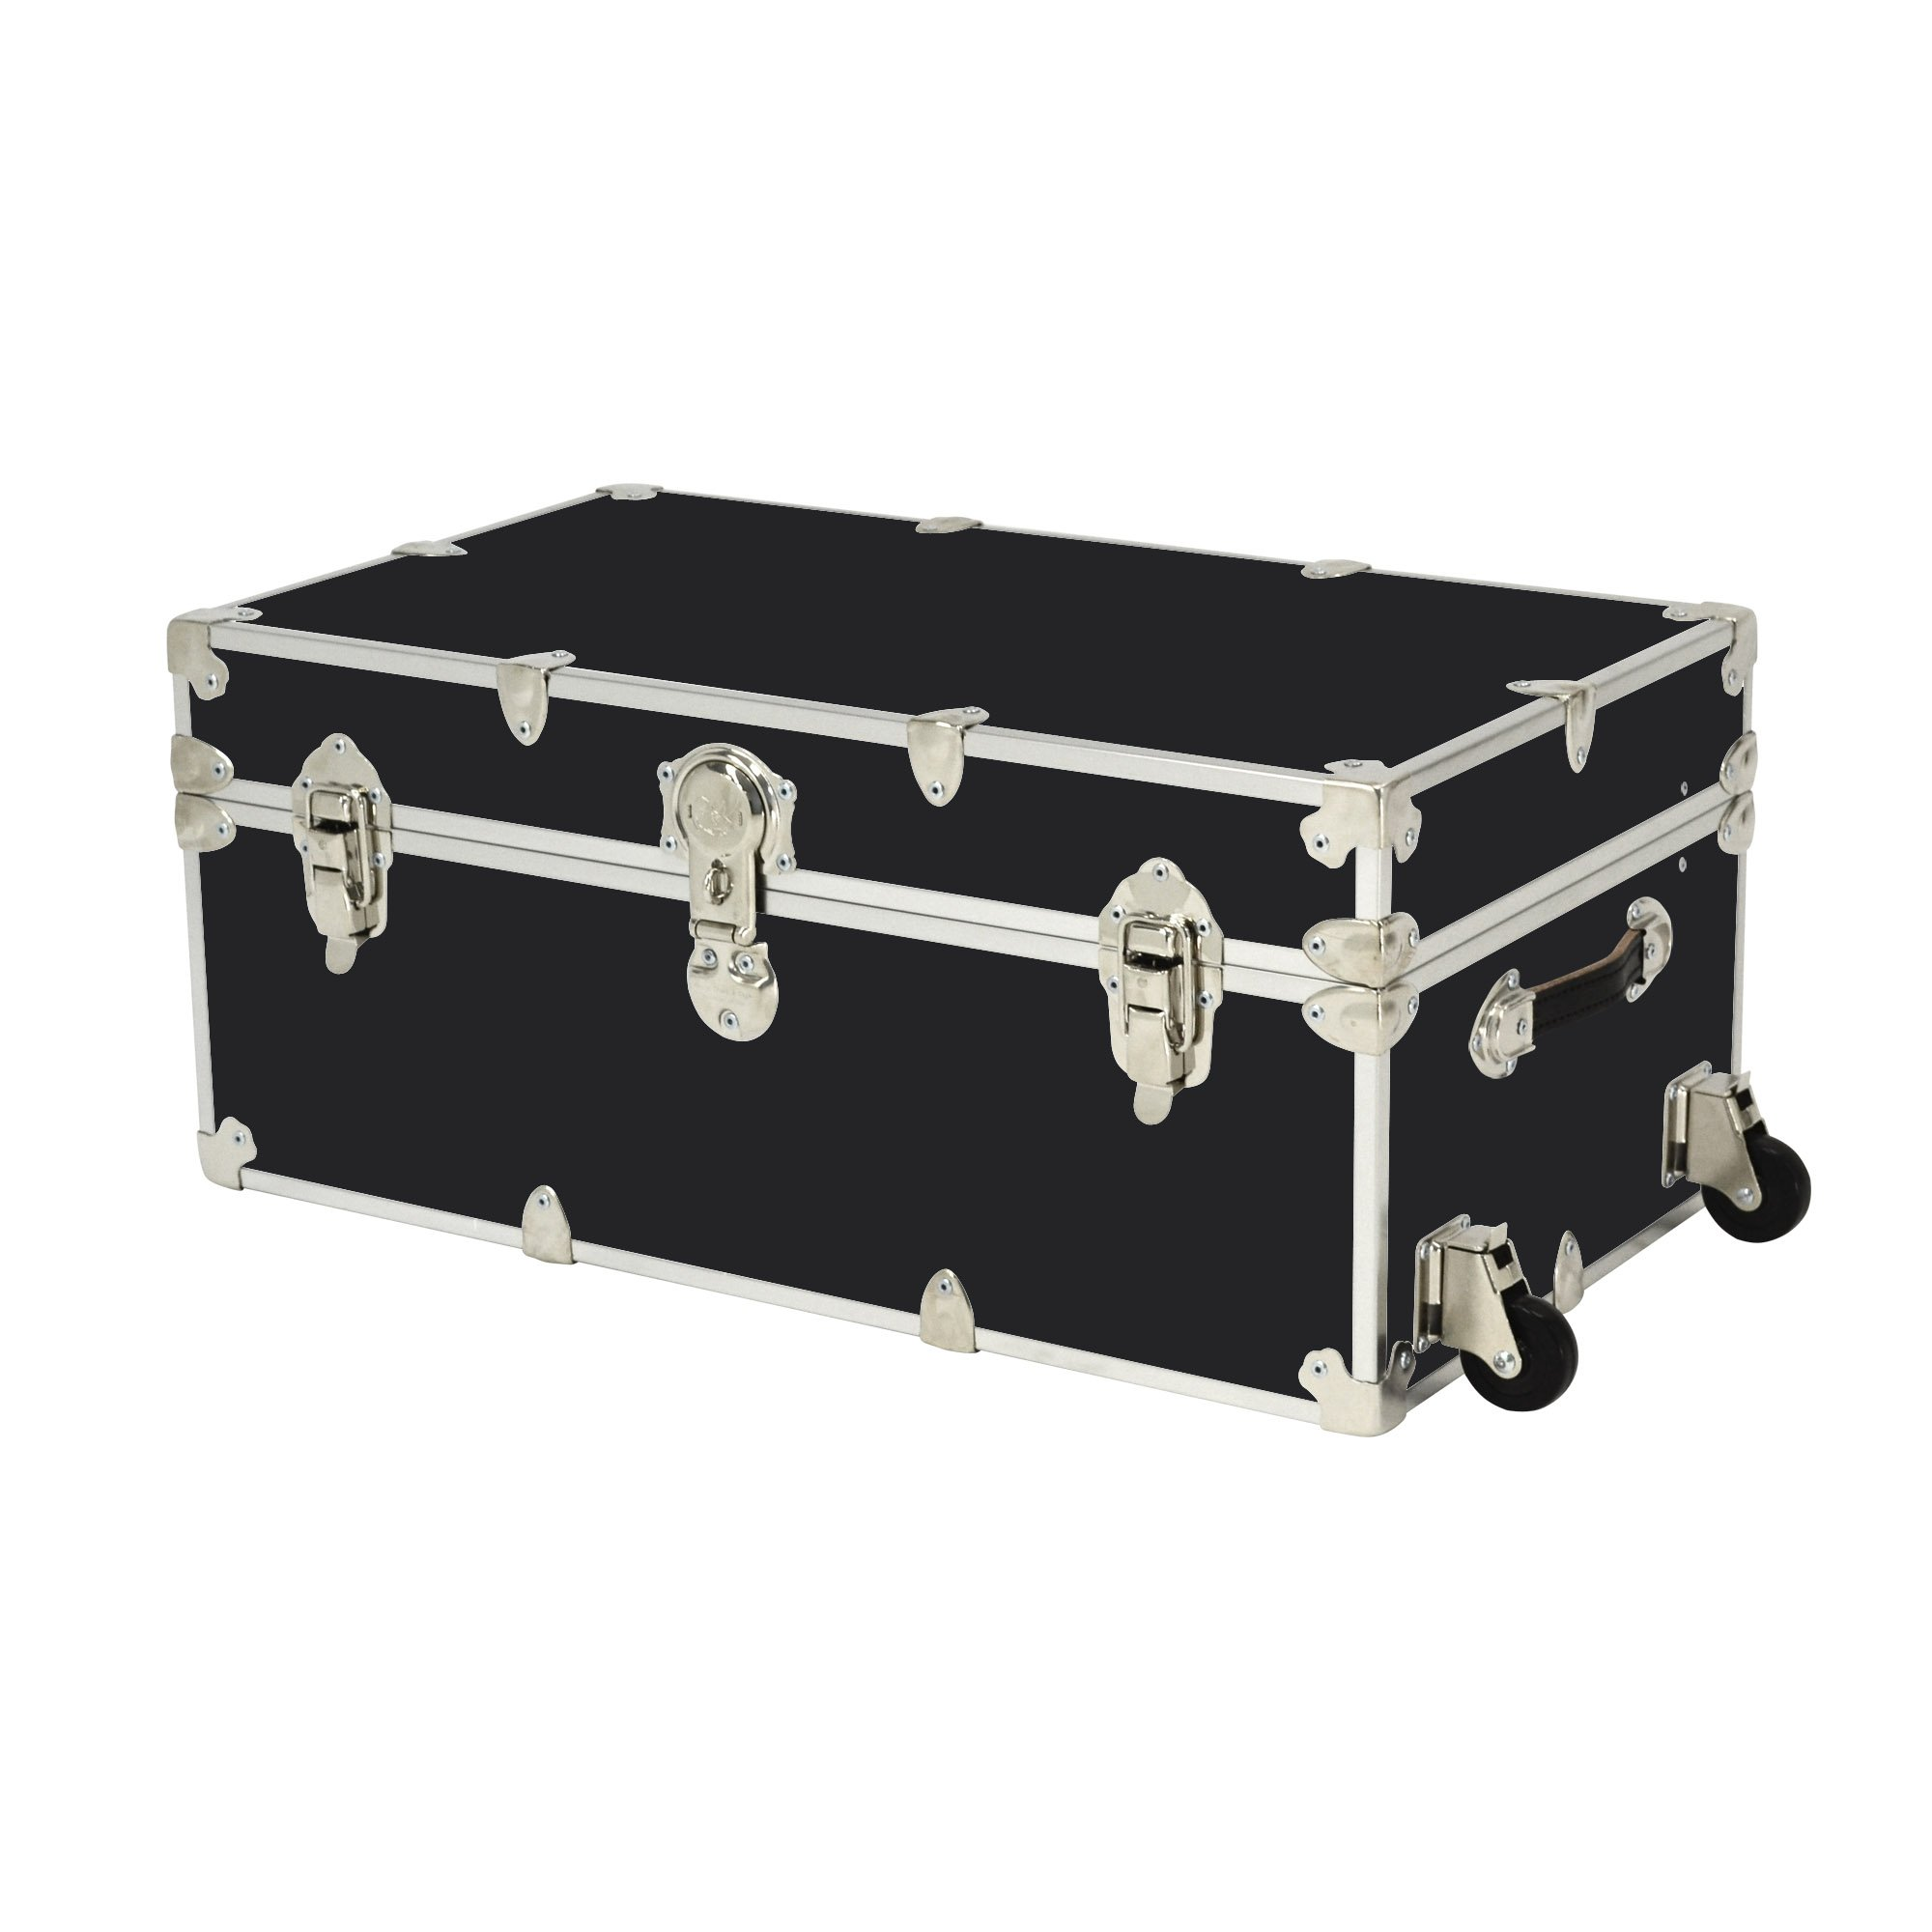 Rhino Trunk and Case Large Armor Trunk with Wheels, 32'' x 18'' x 14'', Black by Rhino Trunk and Case